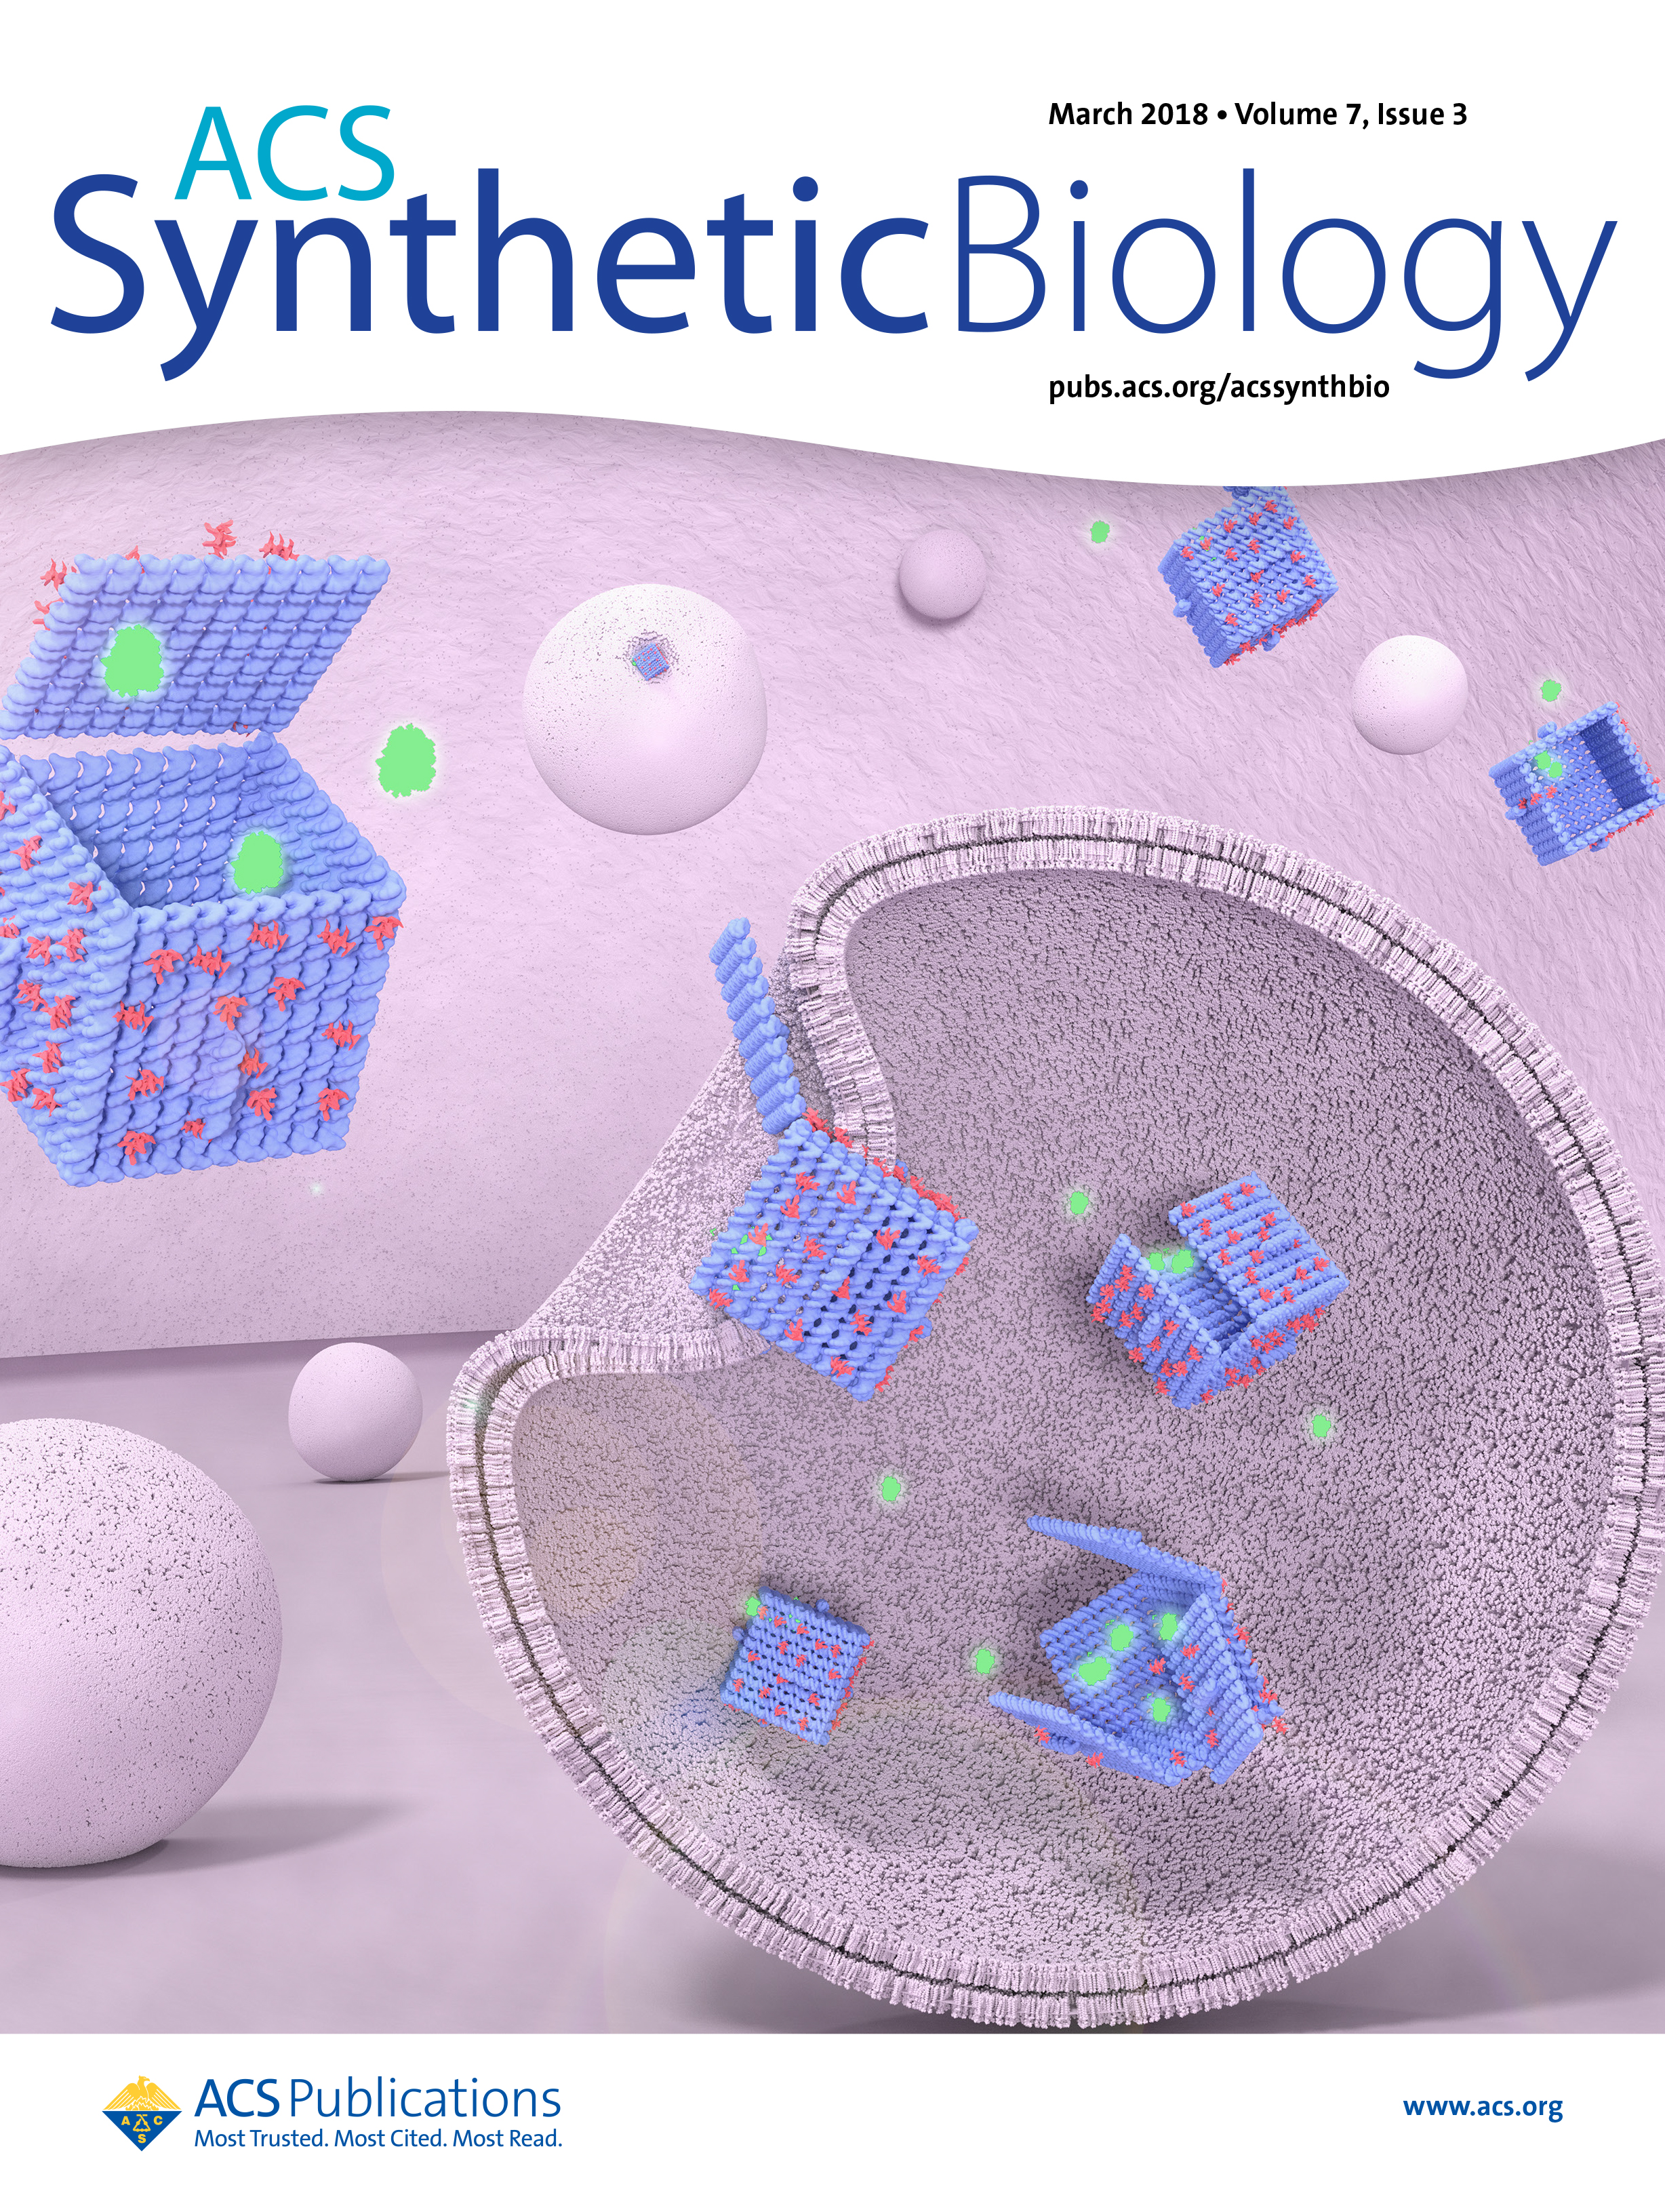 ACS Synthetic Biology Cover: March 2018 Issue - DNA origami viruses inside endosomes. Upon escaping endosomes, the viruses release green fluorescent protein (GFP) inside the cell. The background of the Figure denotes an intracellular environment, with spheres depicting endosomes, blue boxes DNA origami and green particles  GFP.